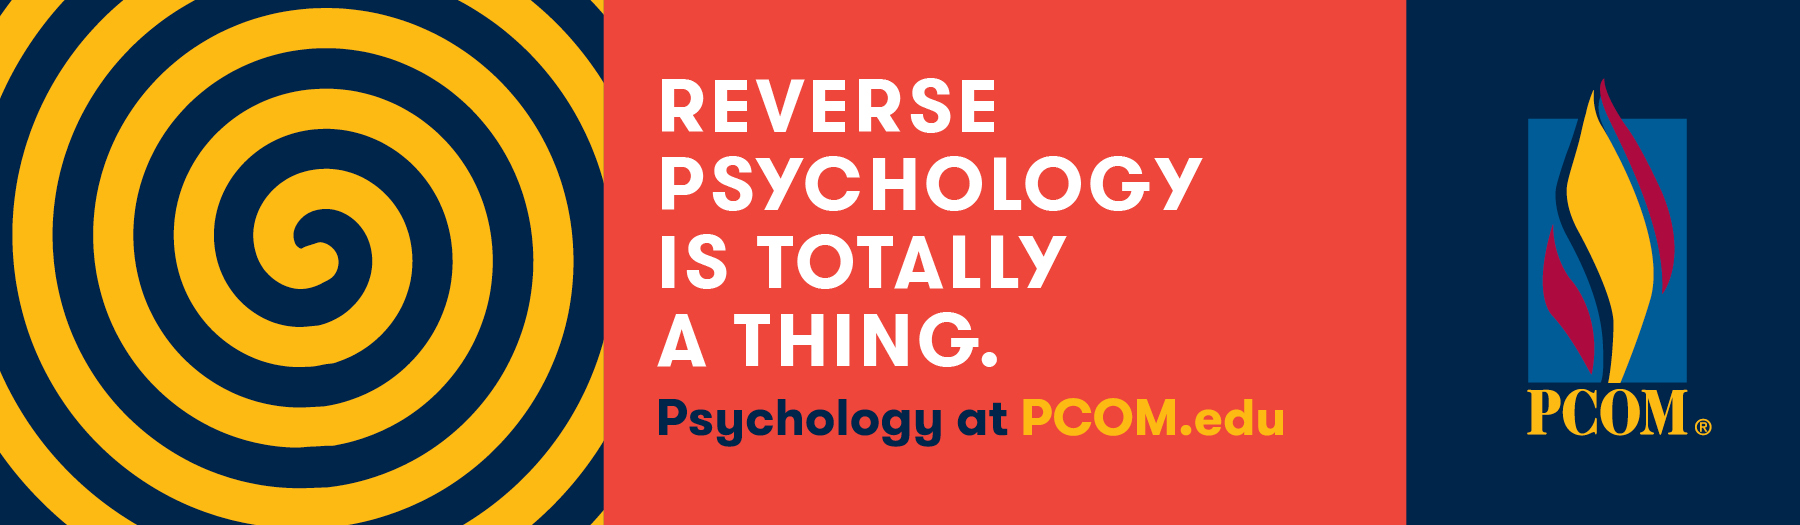 PCOM - Reverse Psychology is Totally a Thing - outdoor billboard